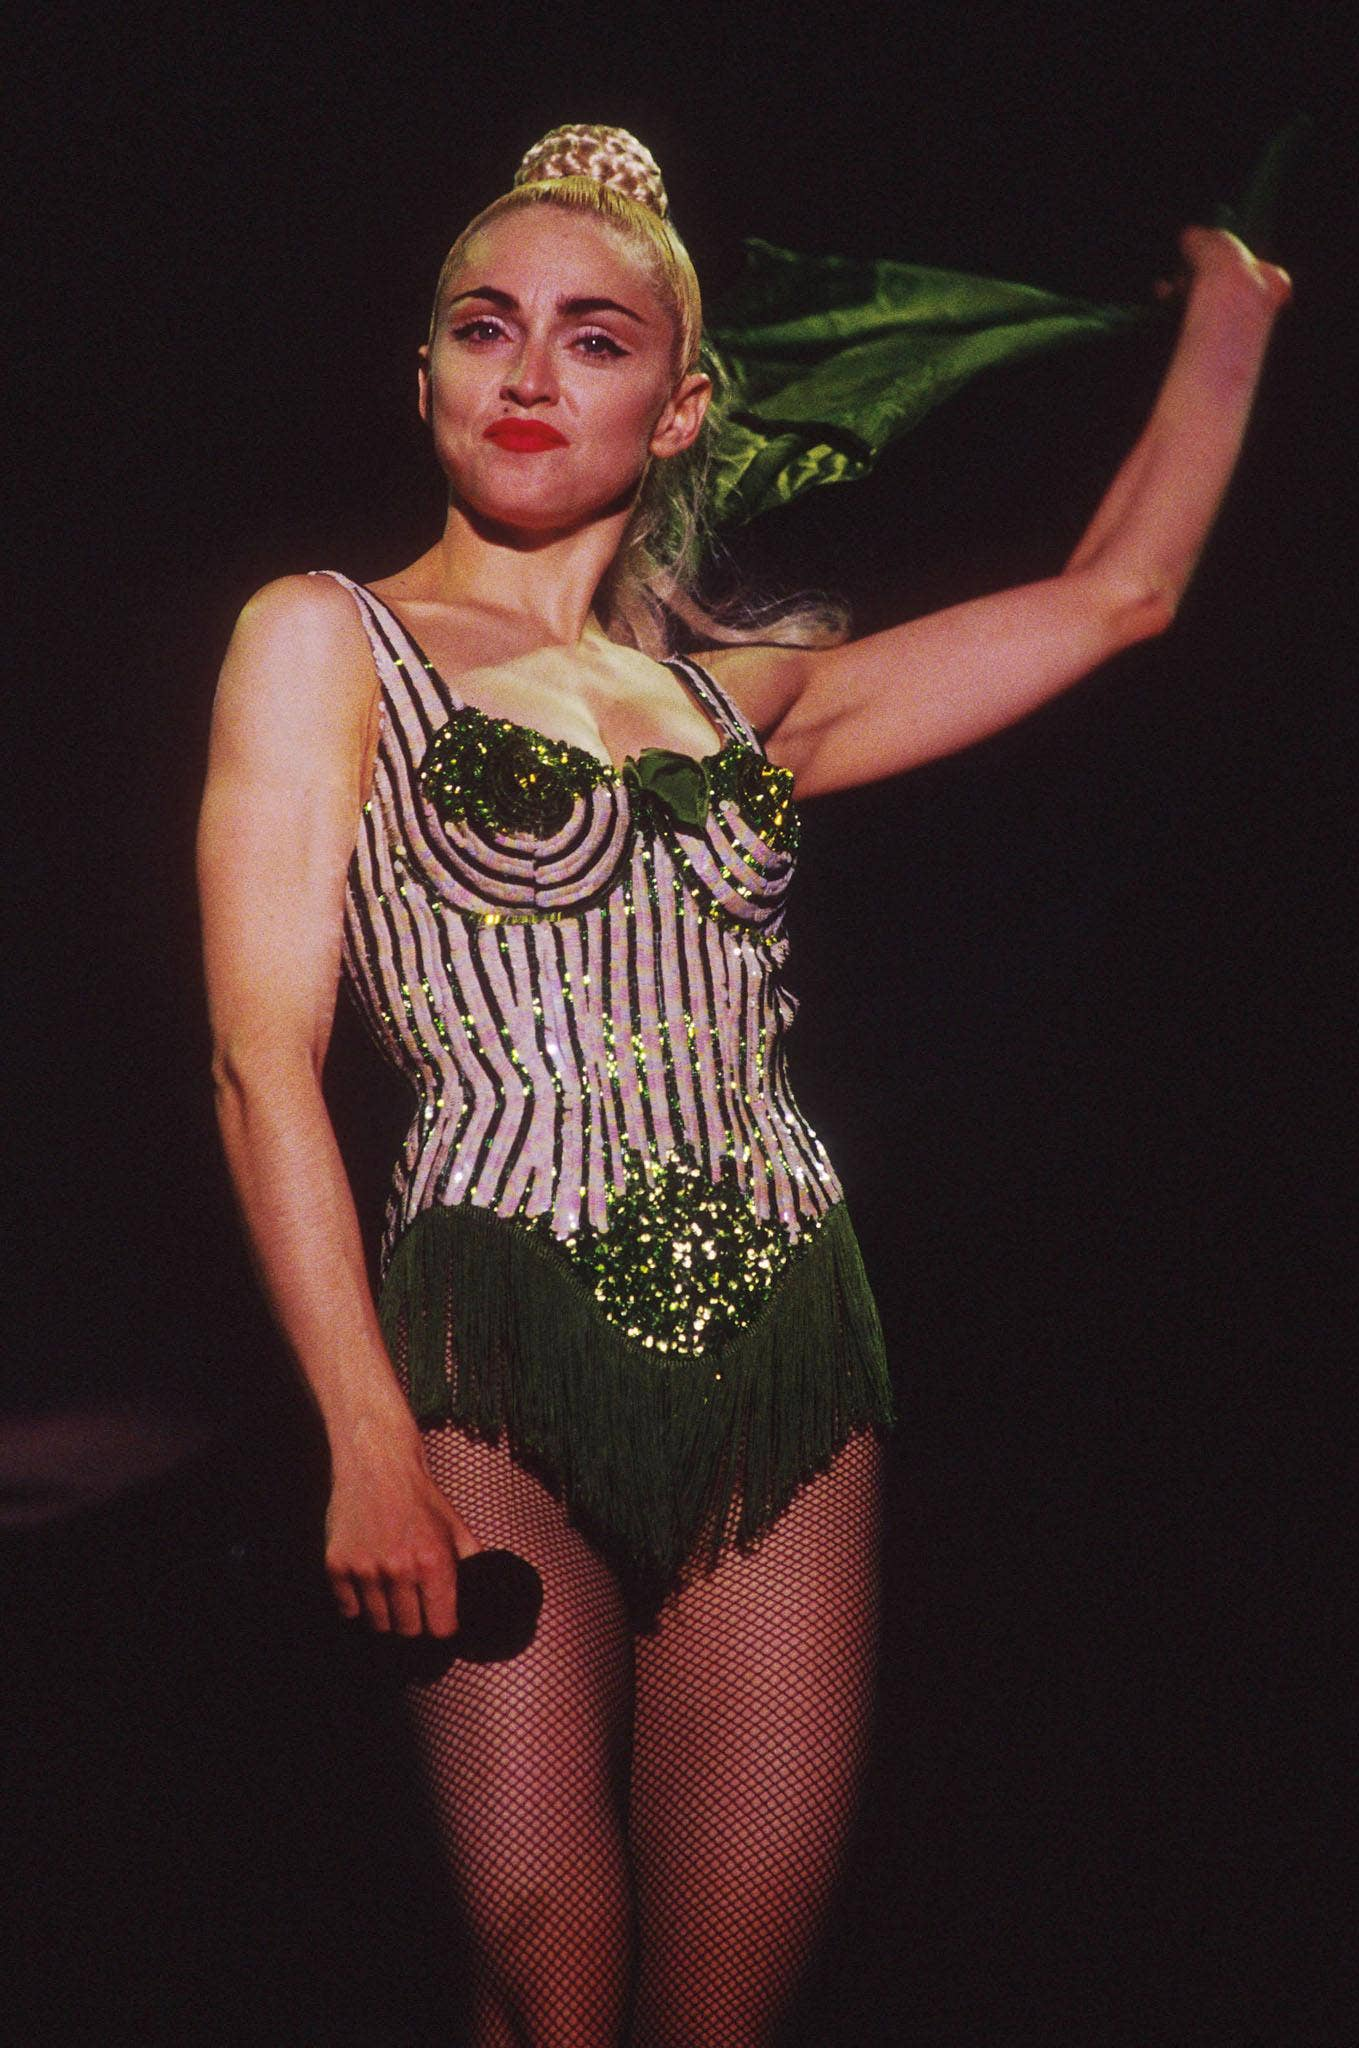 The couture corset designed by Jean Paul Gaultier for Madonna and worn by Madonna on the 1990 Blonde Ambition tour is to go on display in Barbican.